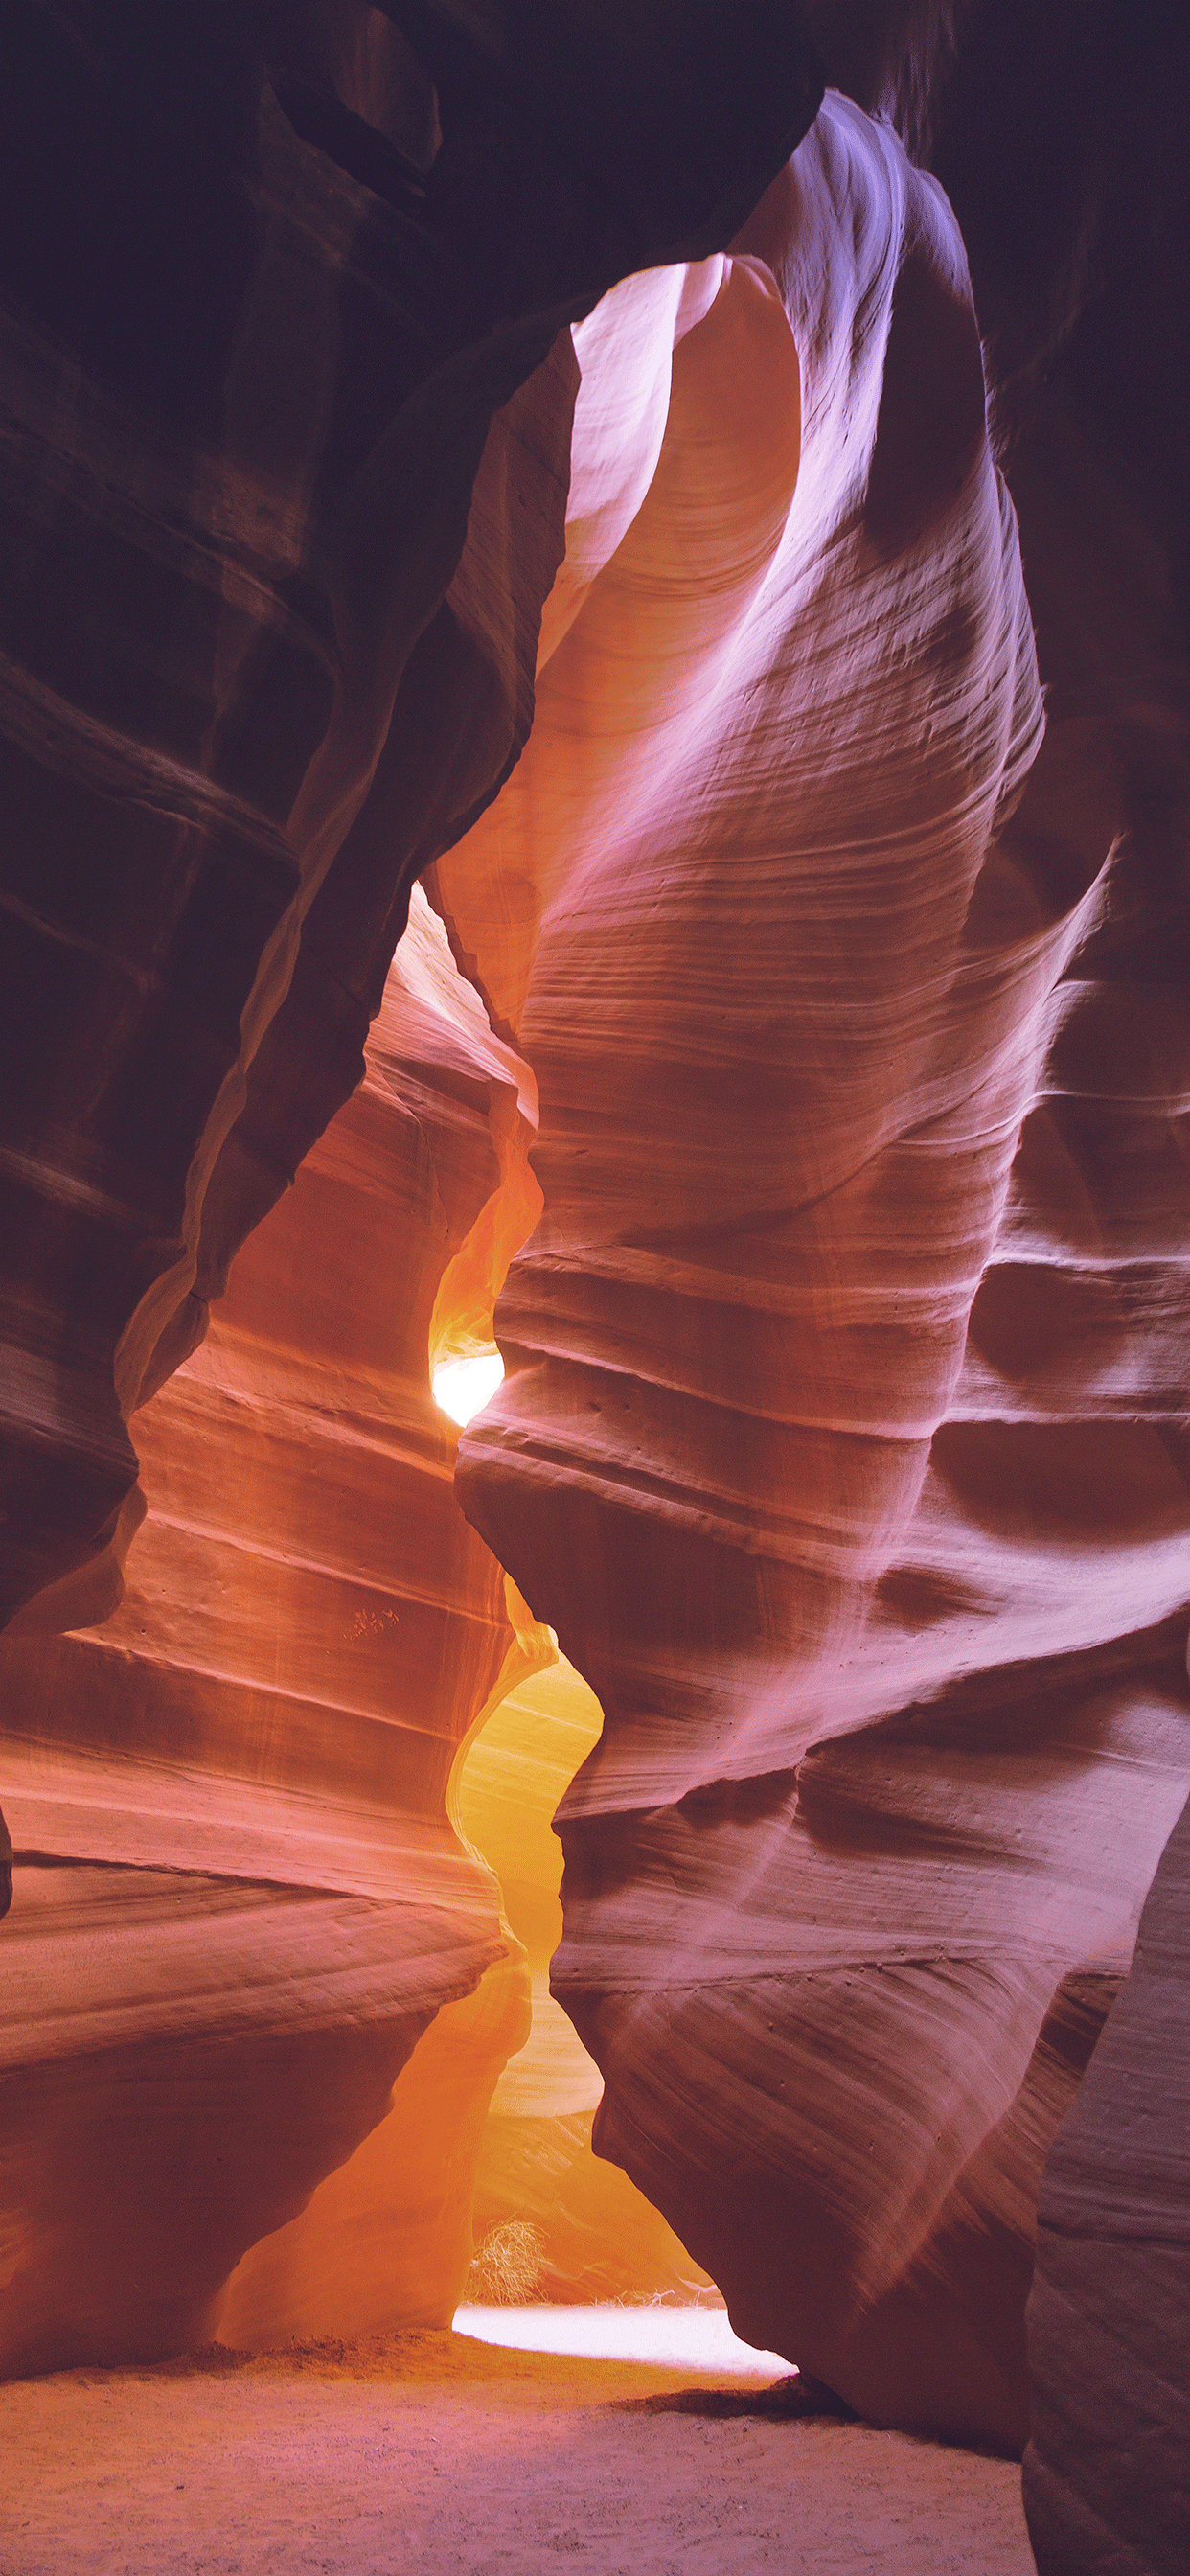 iPhone wallpaper antelope canyon b Antelope Canyon